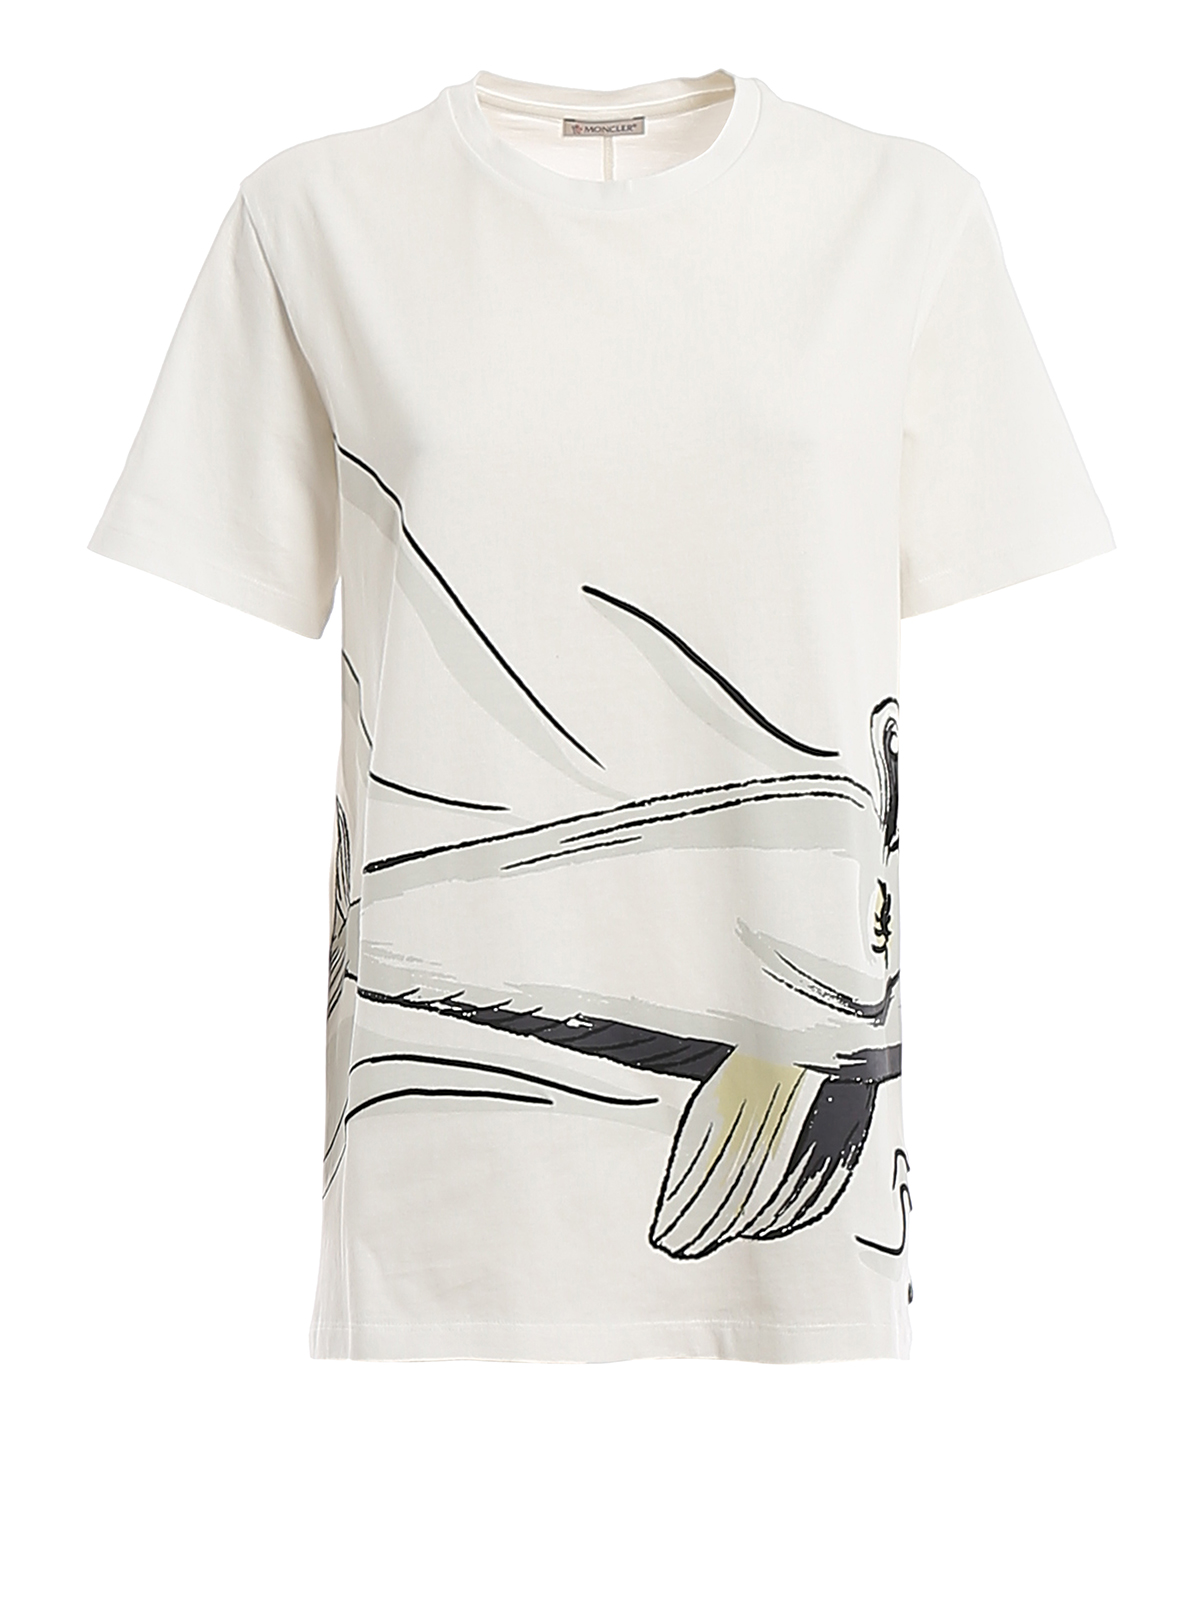 Moncler Cottons EMBROIDERED PRINTED COTTON T-SHIRT